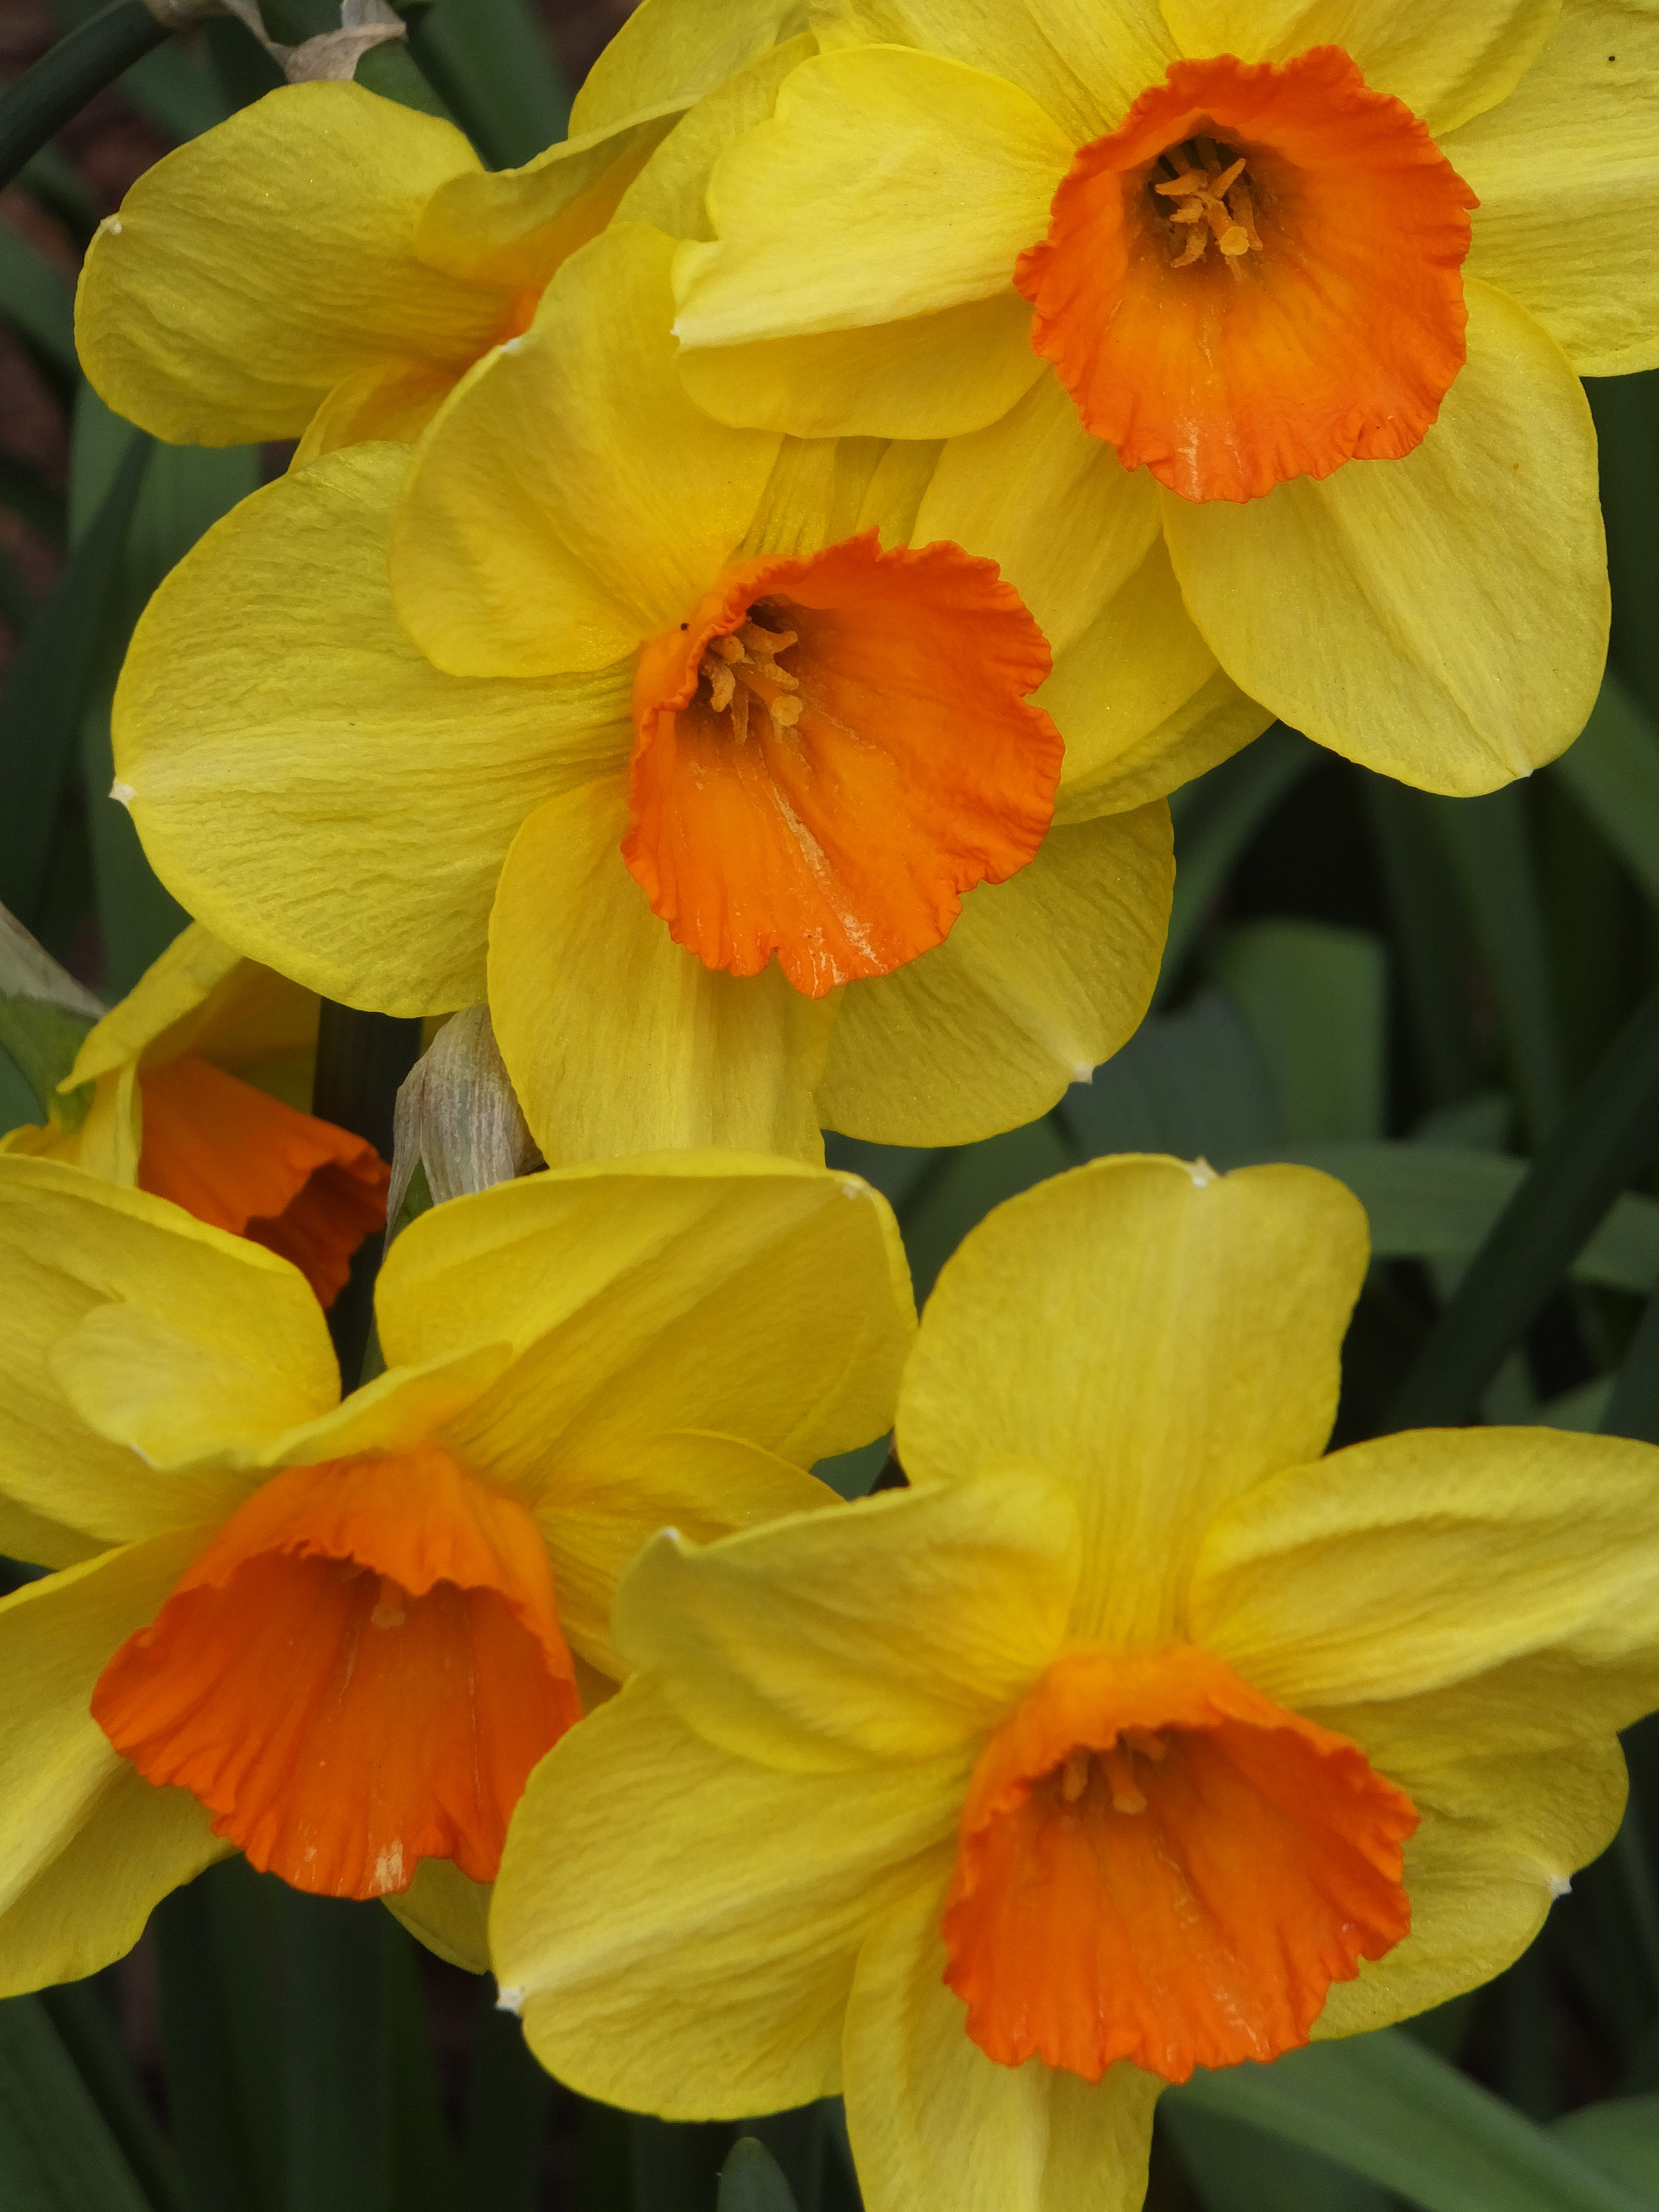 Yellow Daffodils With Orange Centers Ohe Flowers Pinterest